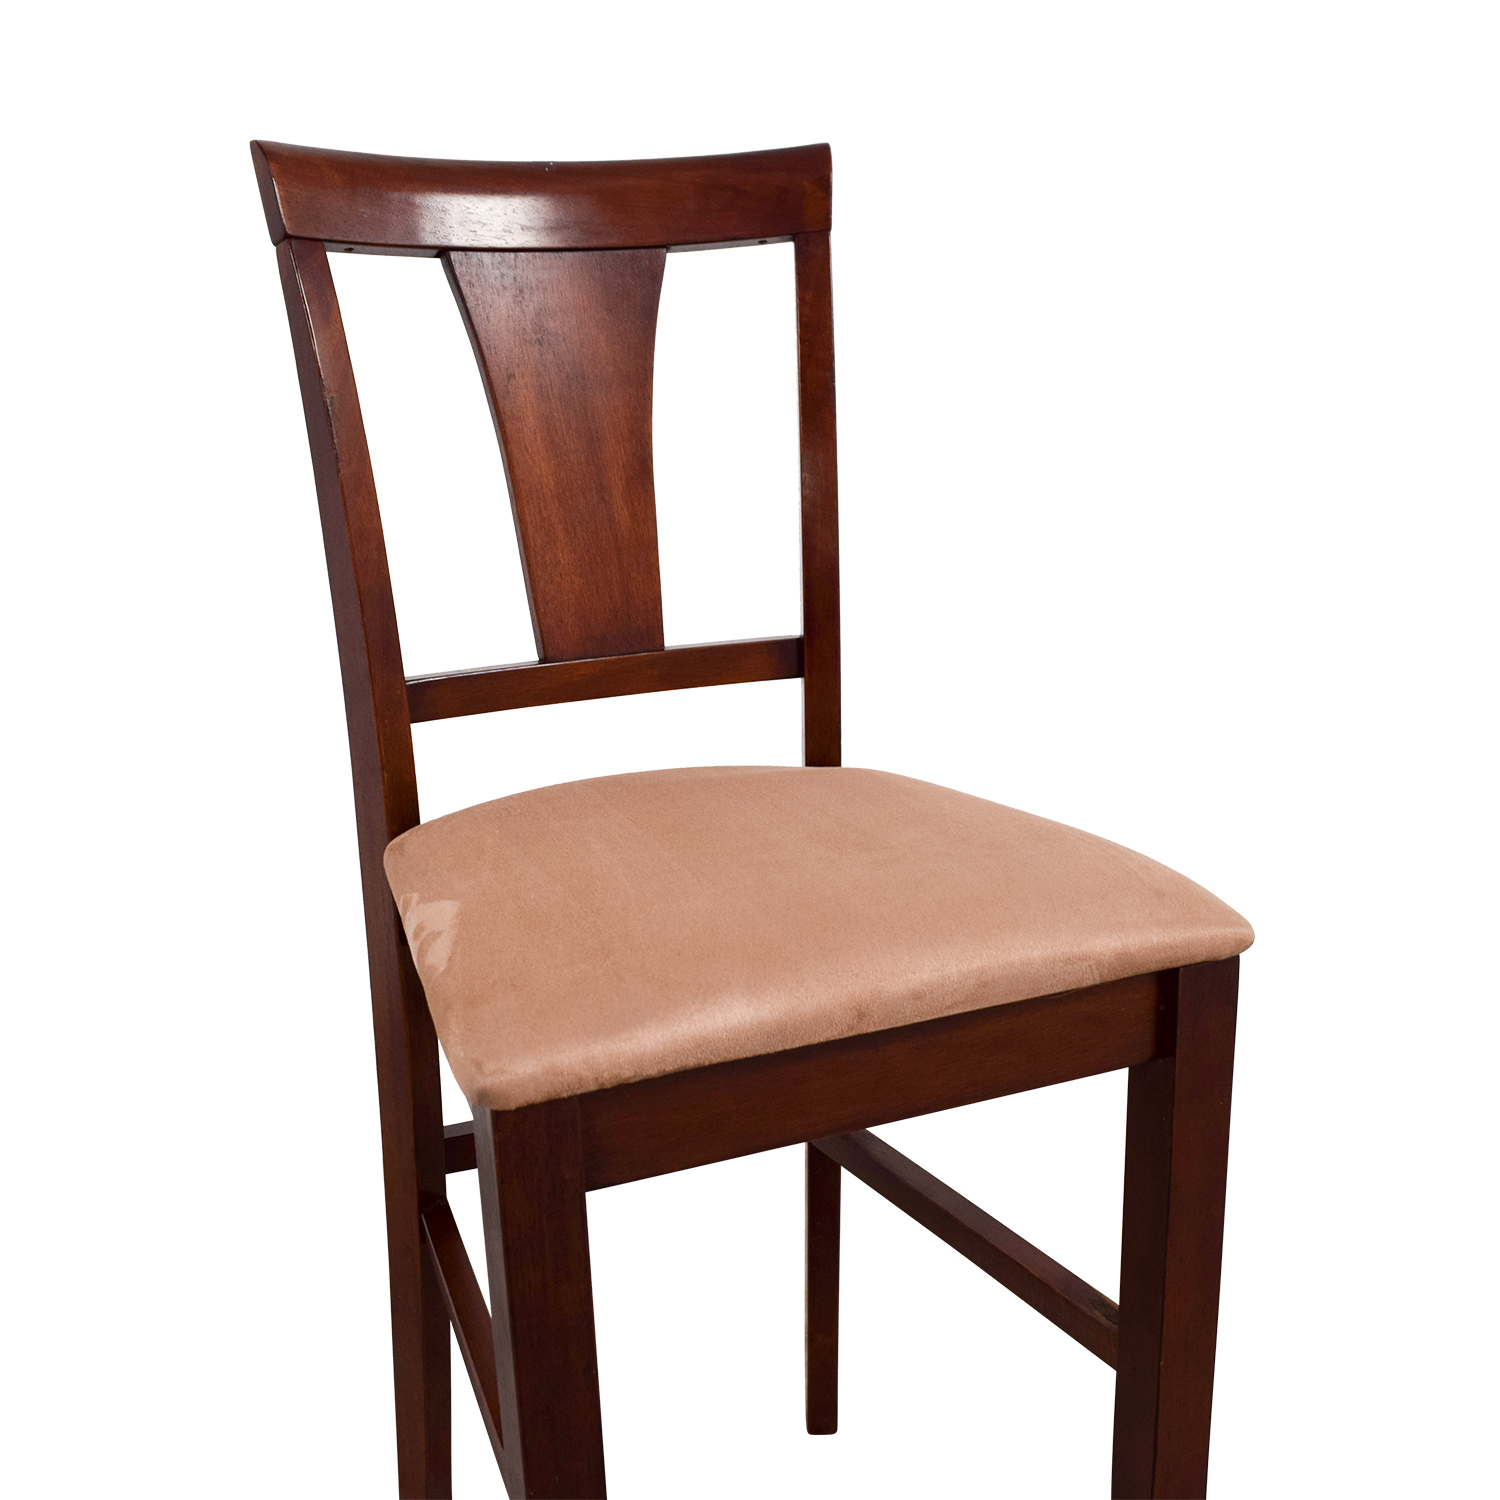 Light Cherry Wood Counter Height Chair with Padded Seat used